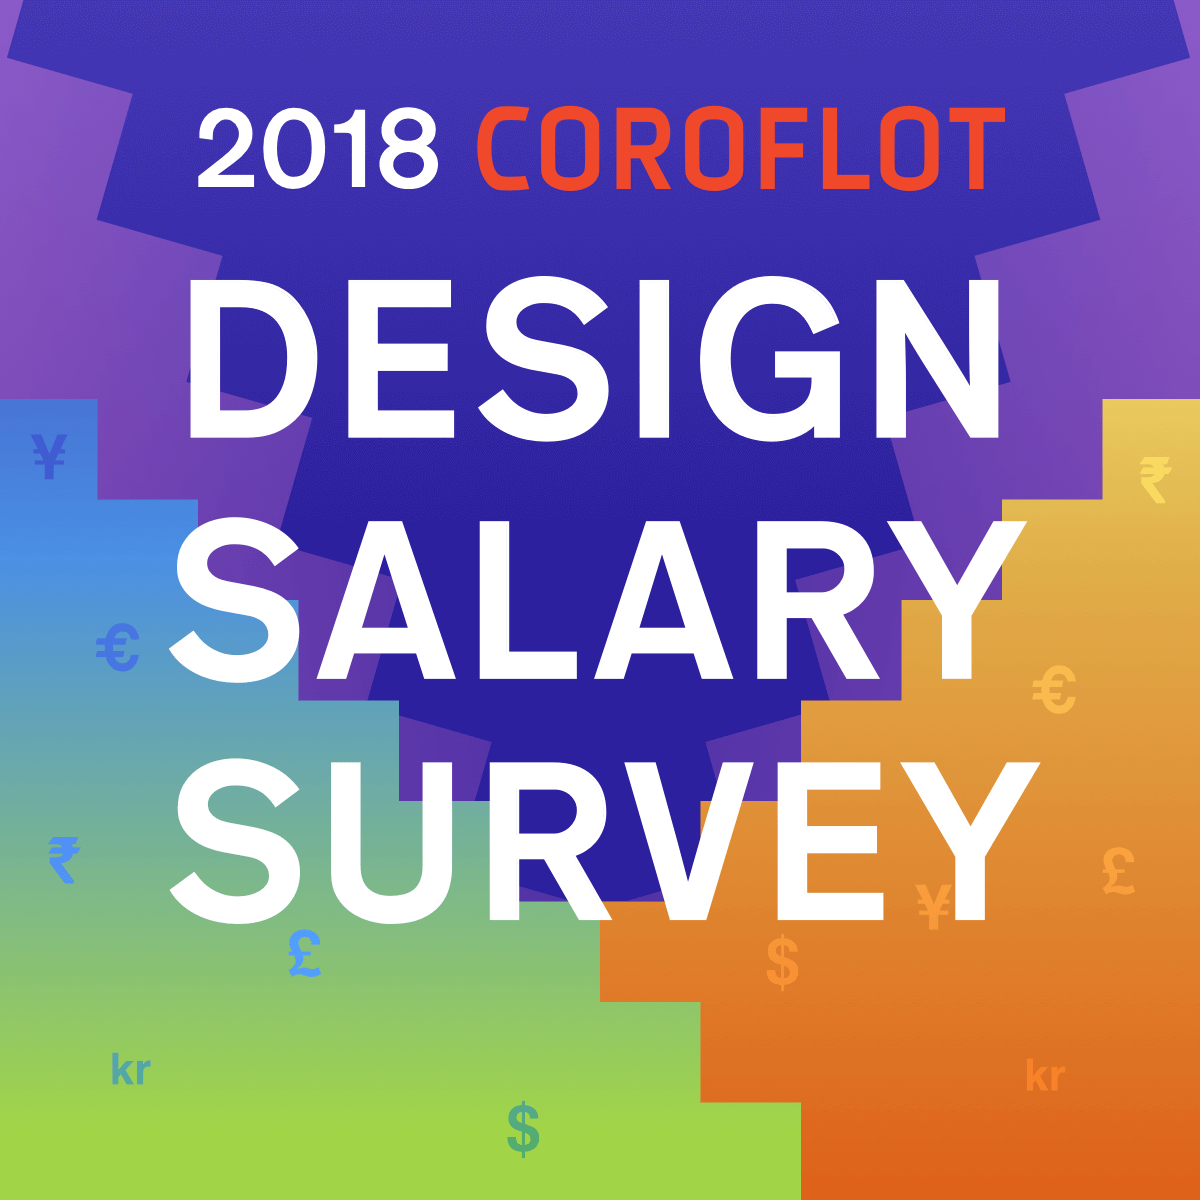 Design Salaries In Switzerland